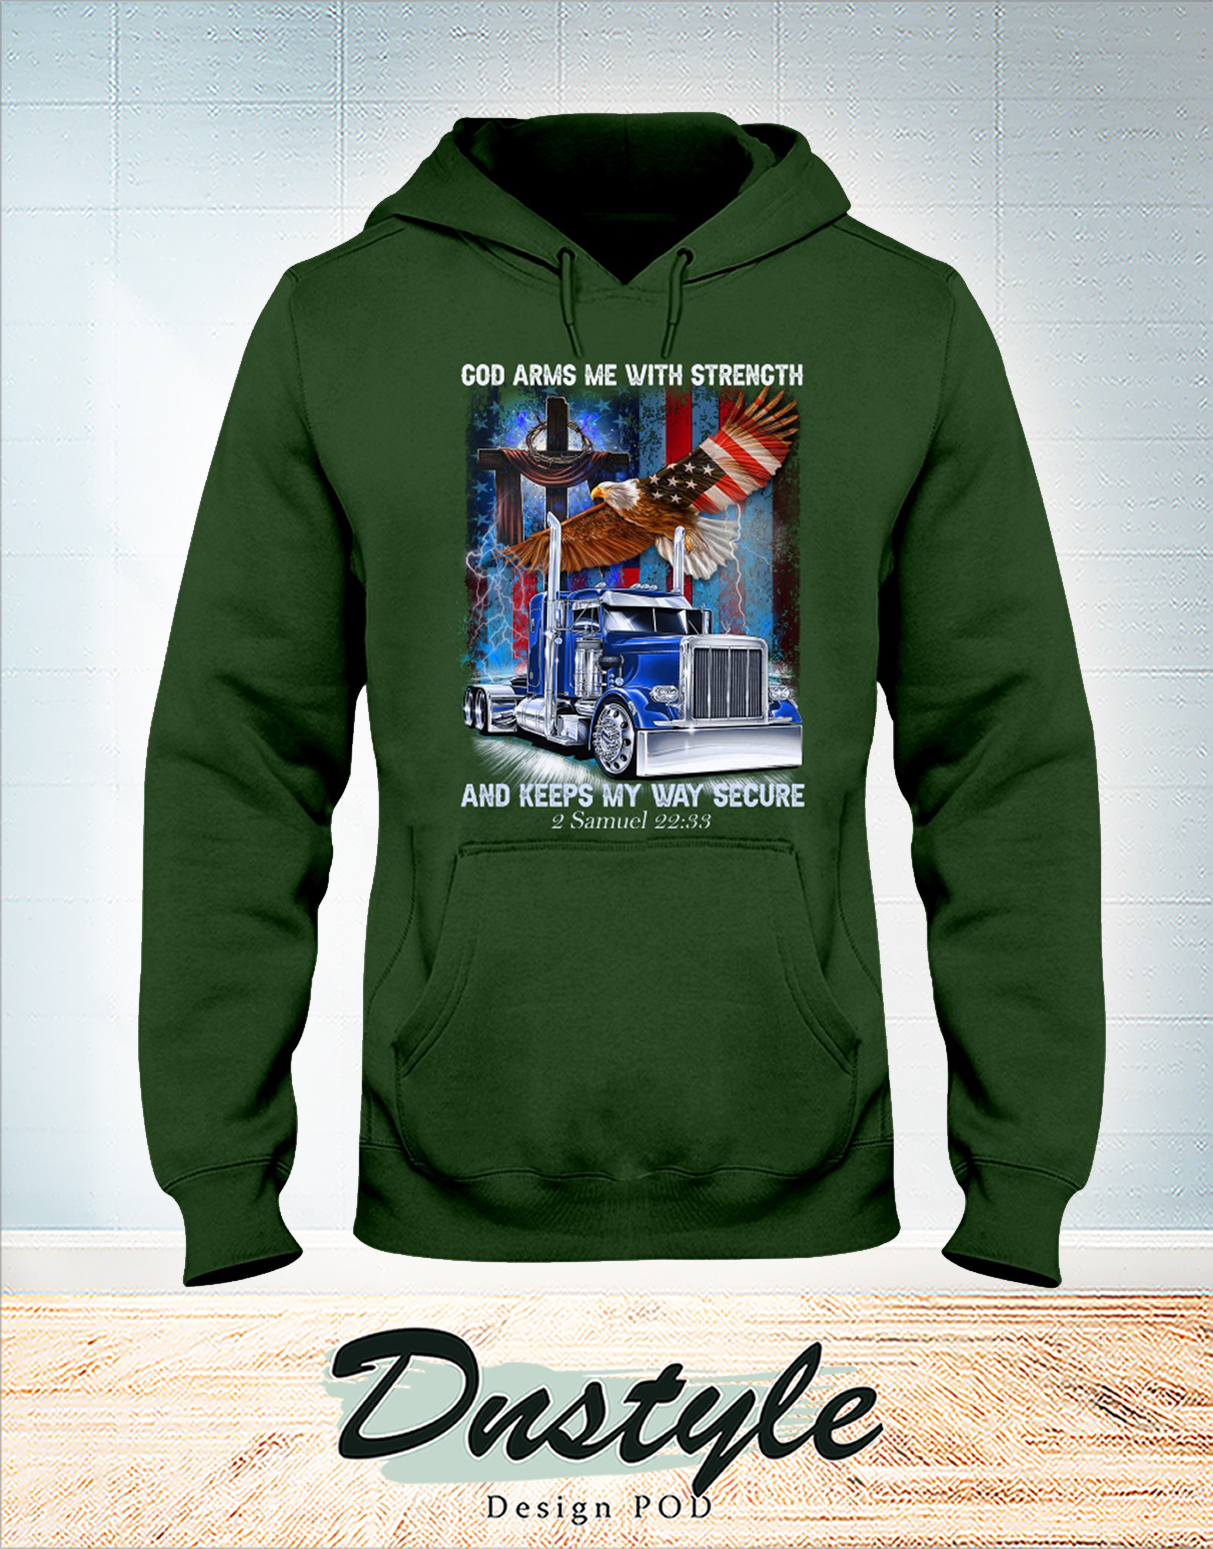 Trucker god arms me with strength and keeps my way secure hoodie